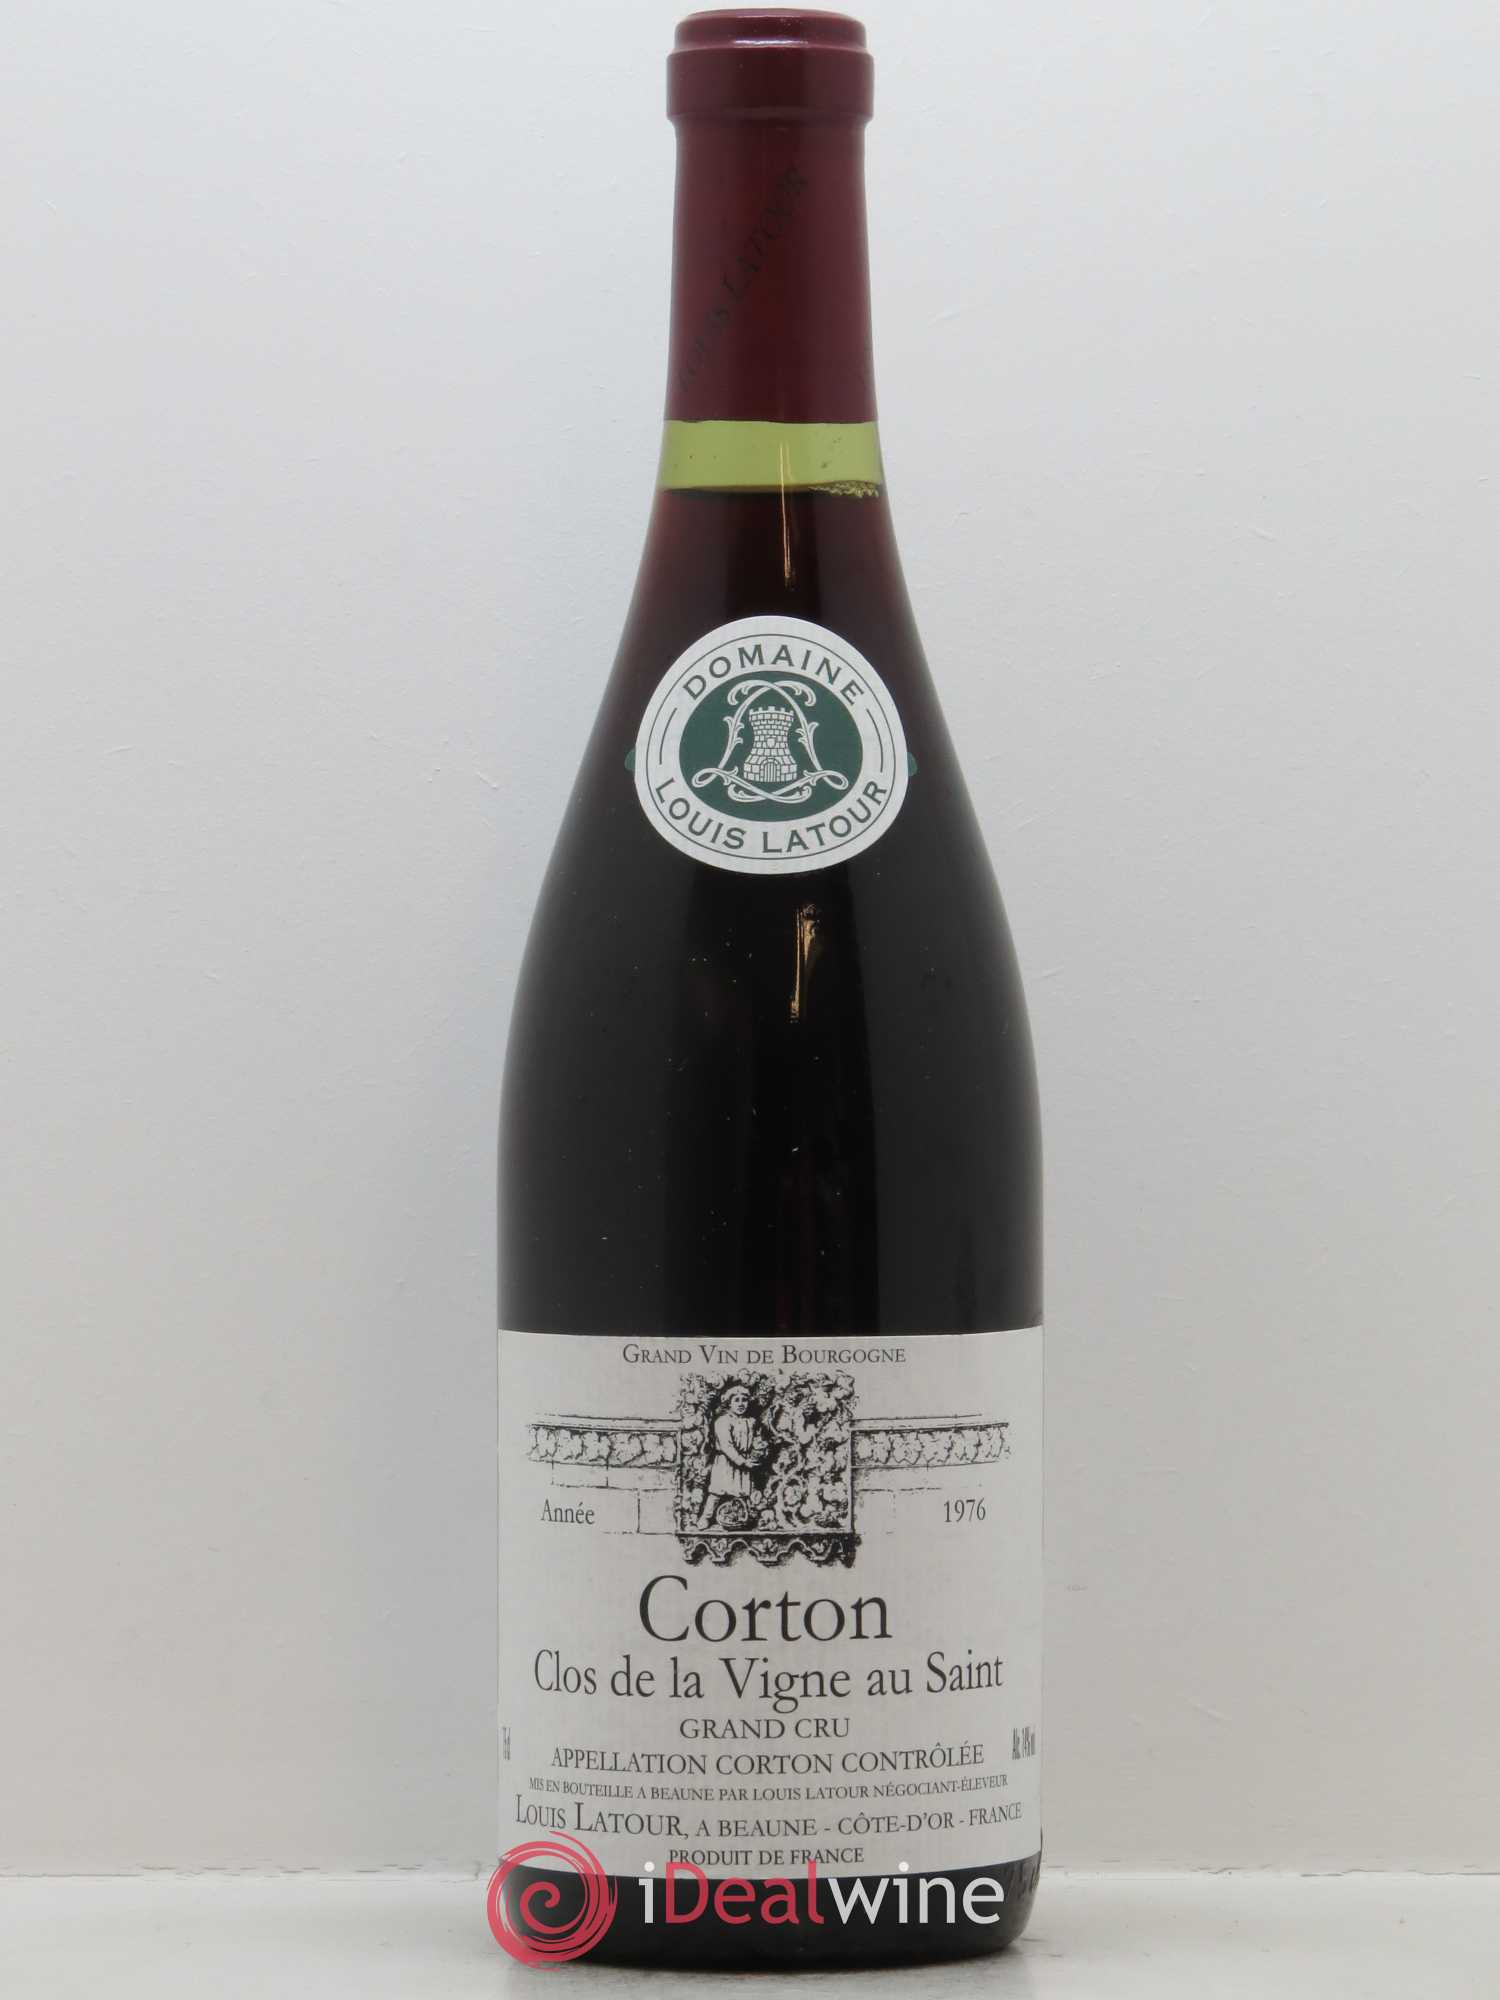 Corton Grand Cru Clos de la vigne au Saint Louis Latour (Domaine)  1976 - Lot of 1 Bottle